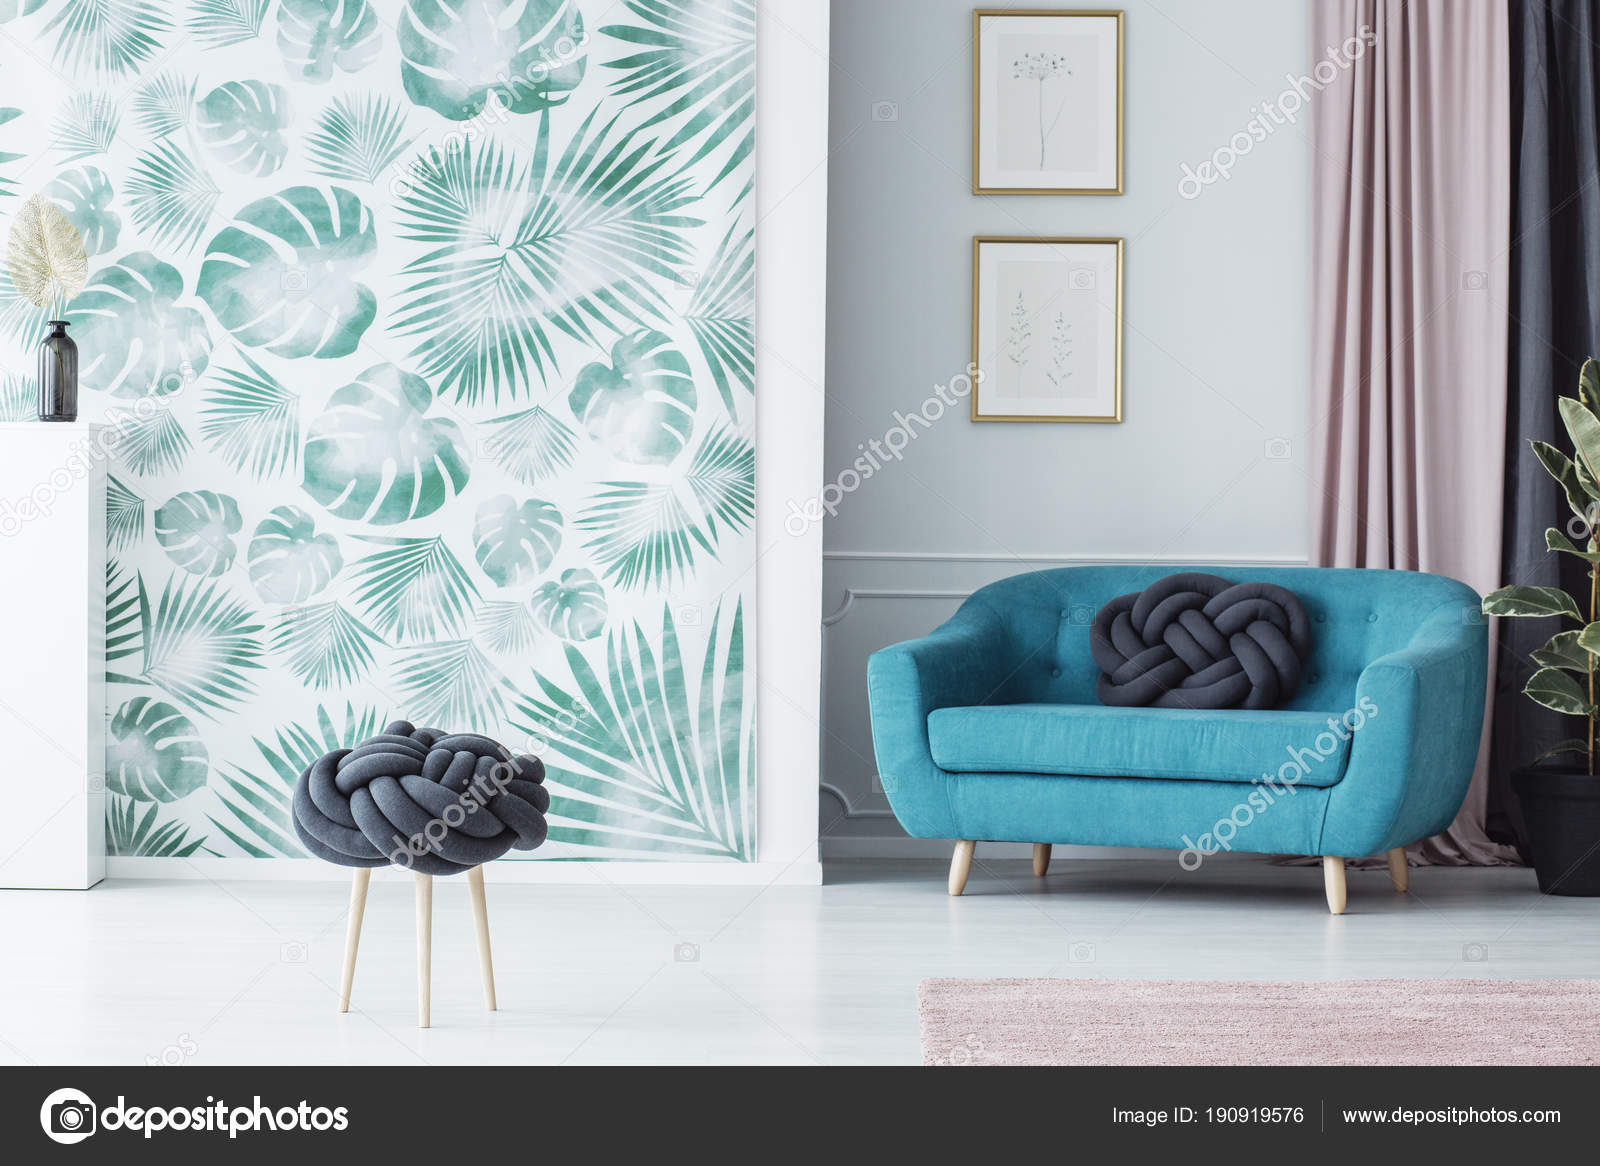 Turquoise Accessoires Woonkamer : Turquoise bank in woonkamer u2014 stockfoto © photographee.eu #190919576